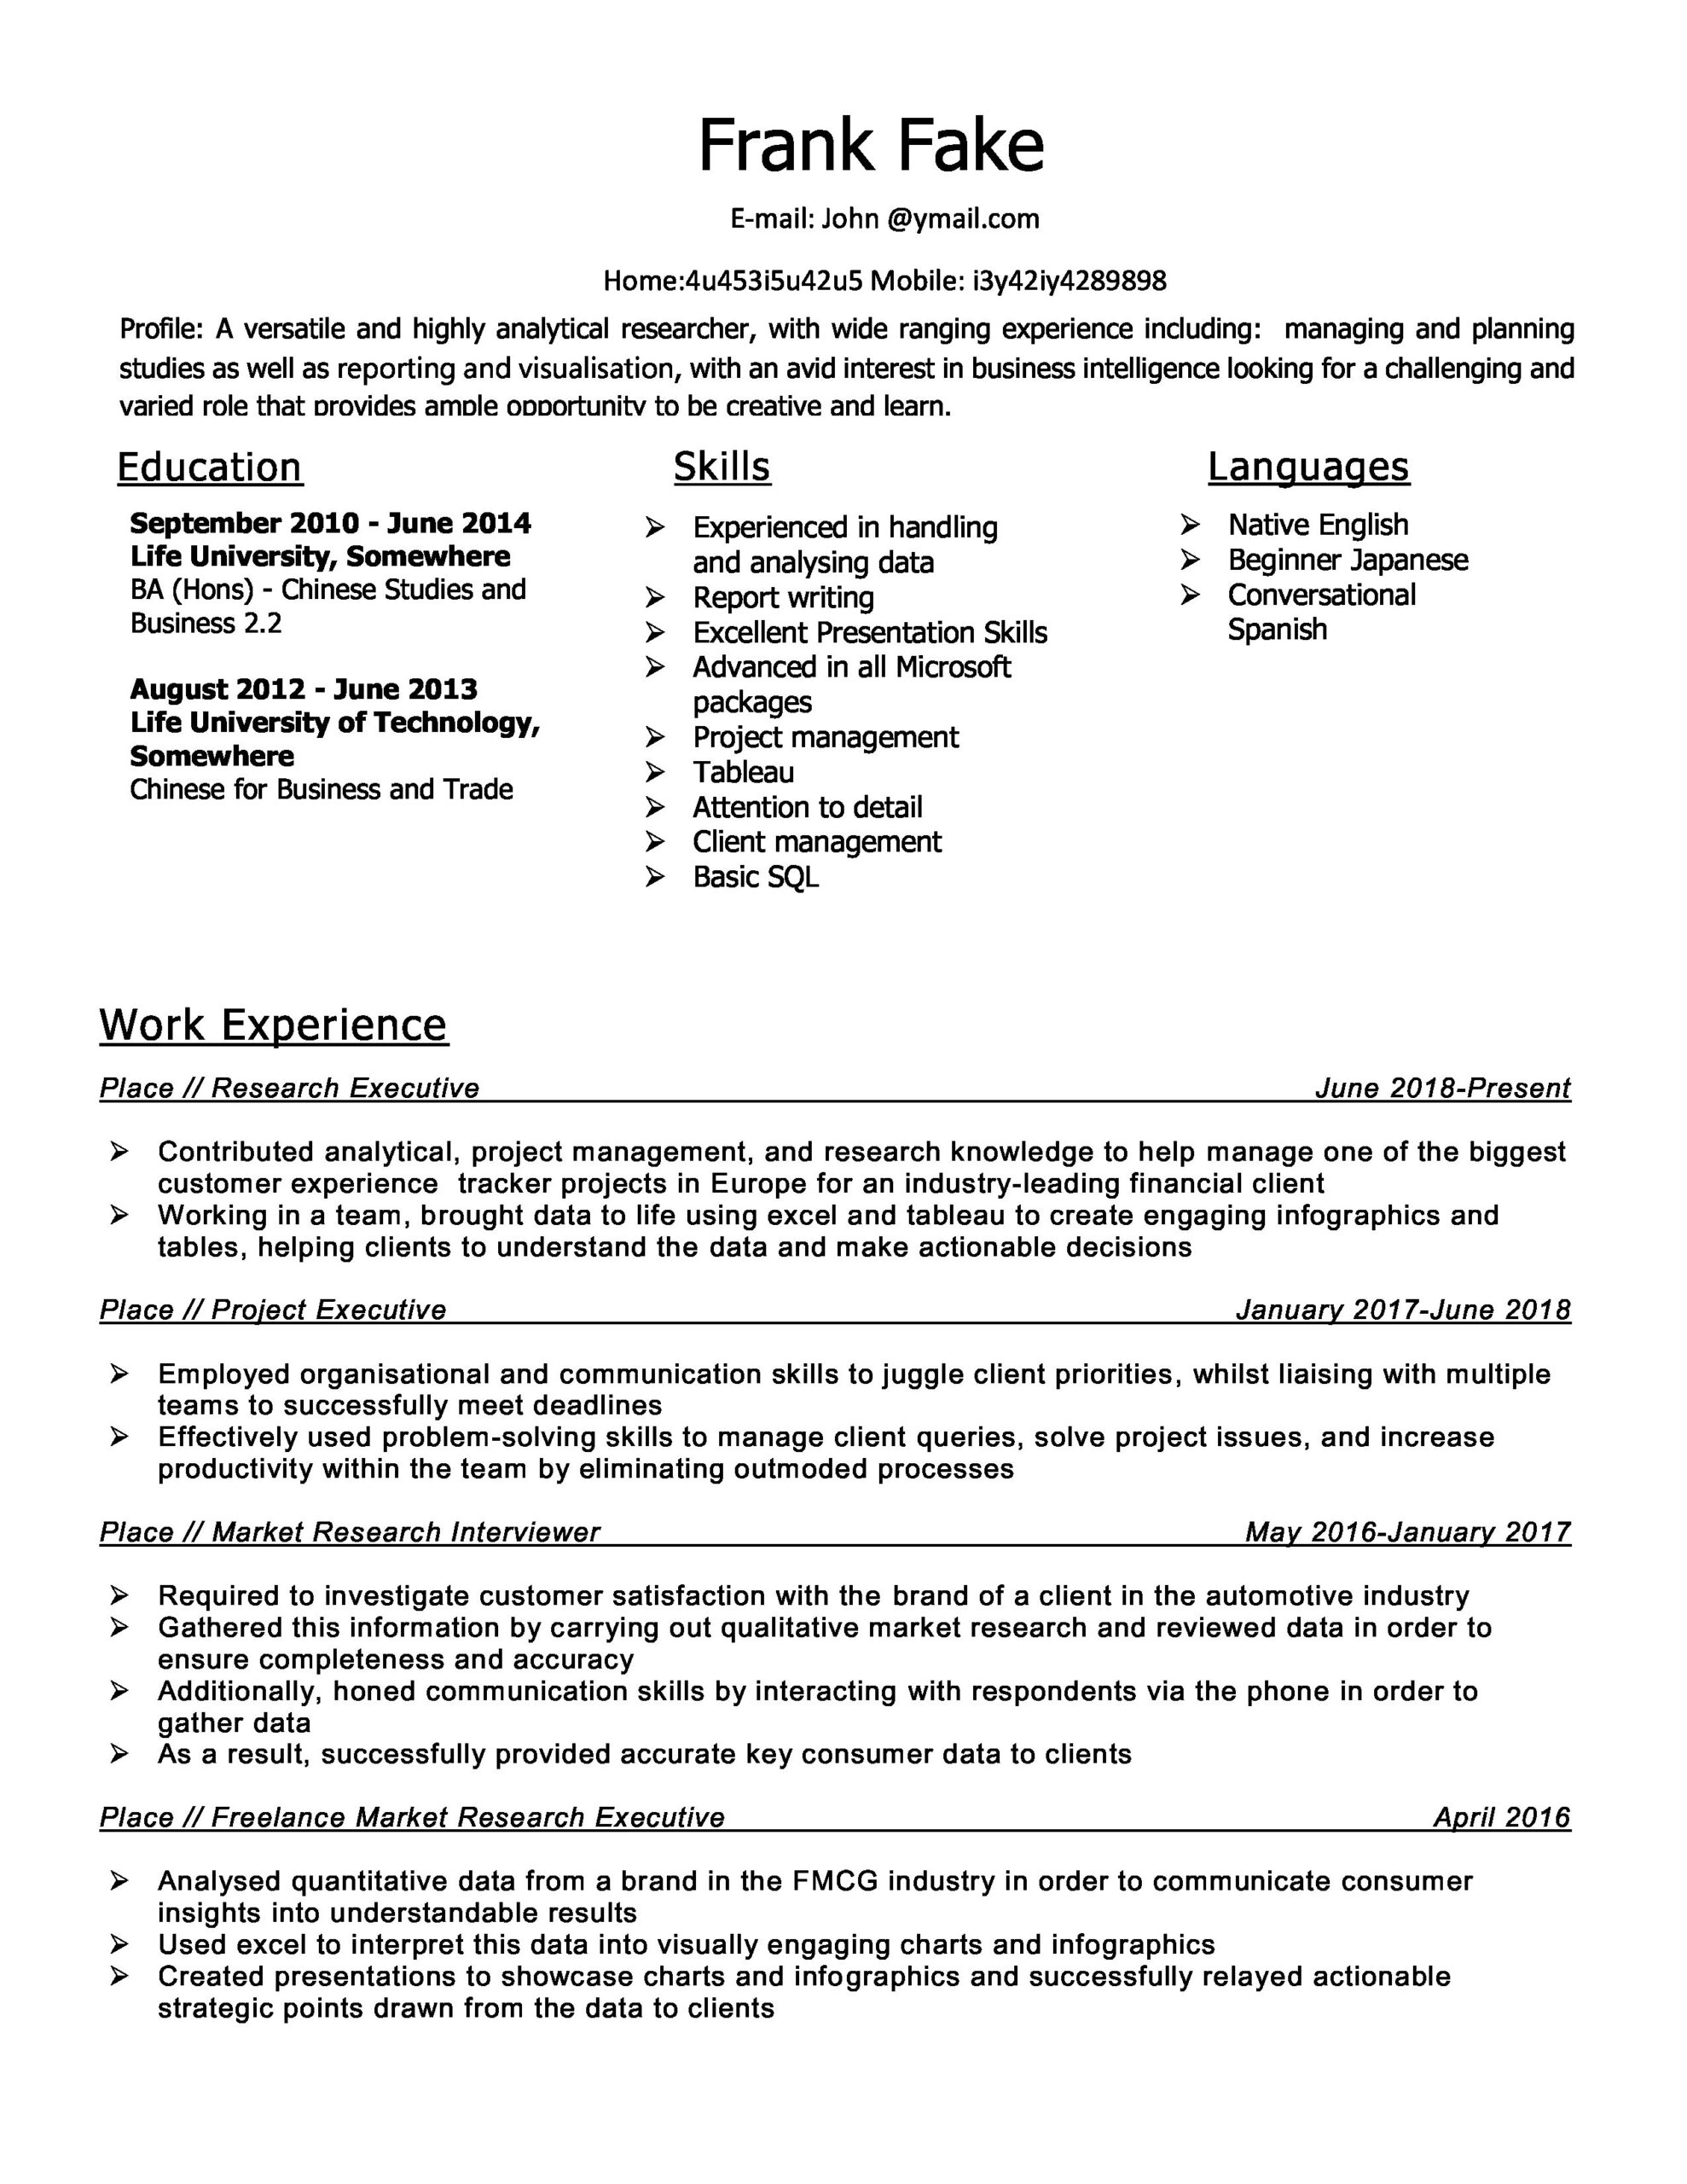 looking for business intelligence roles please critique my cv resumes resume Resume Business Intelligence Resume